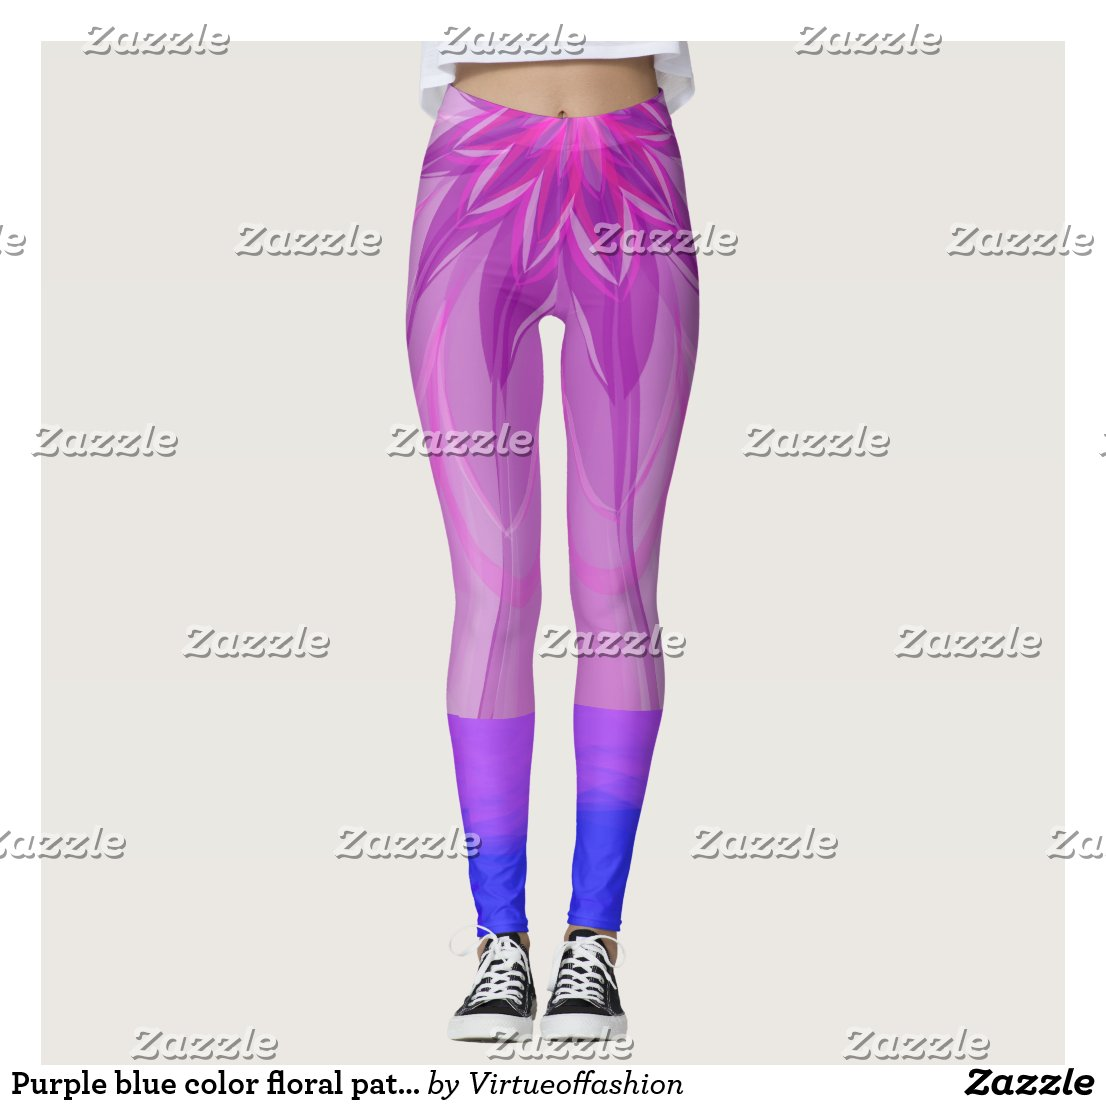 Purple blue color floral pattern popular legging